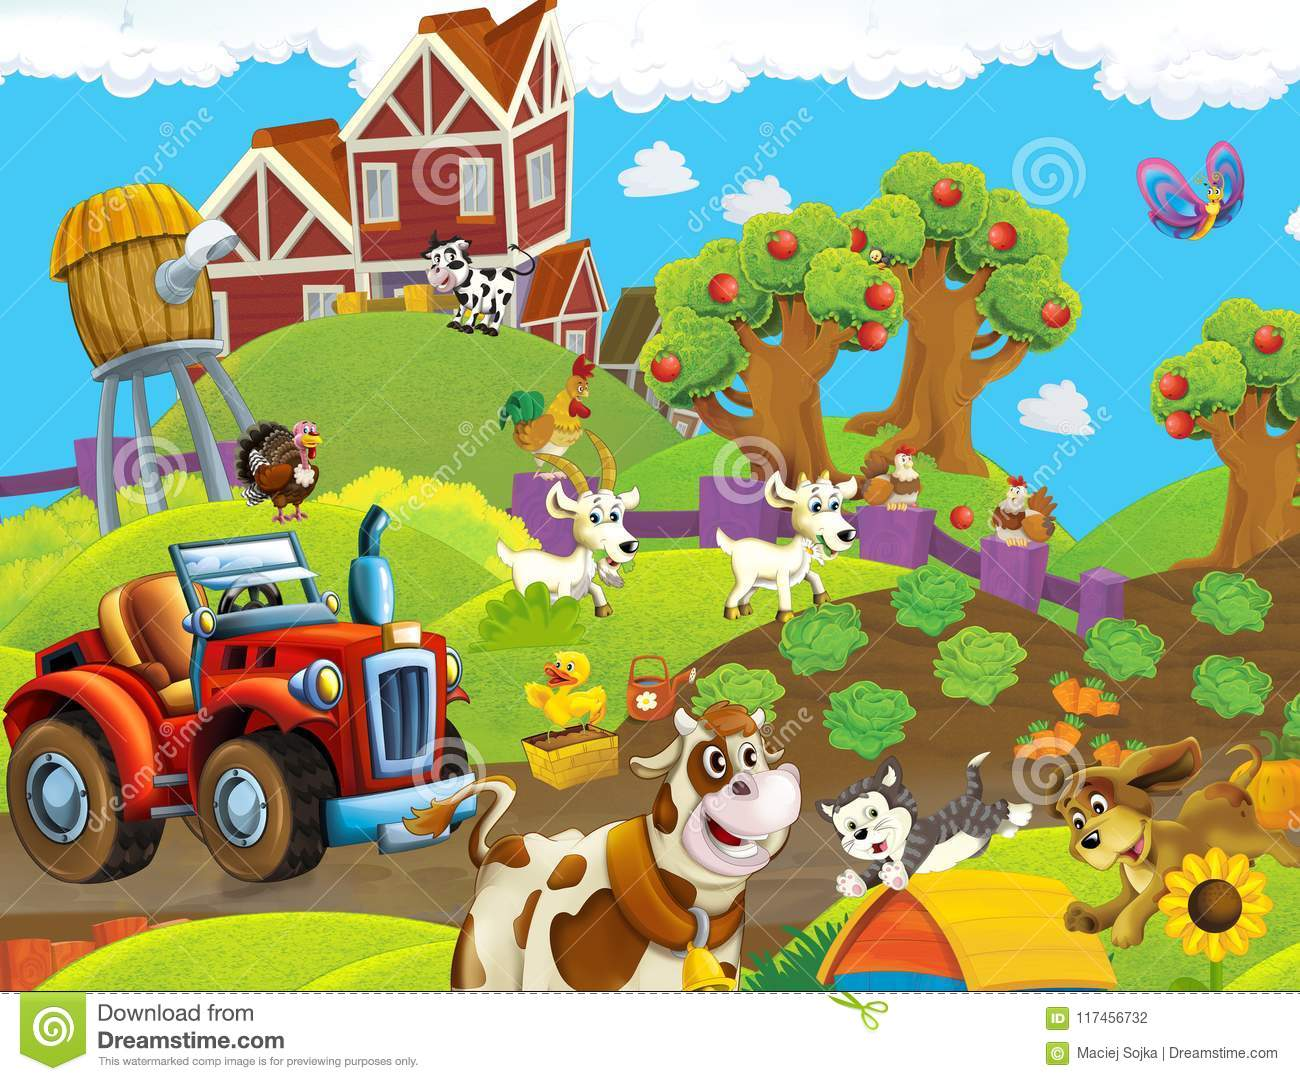 Cartoon Scene With Happy Animals On The Farm - With Tractor